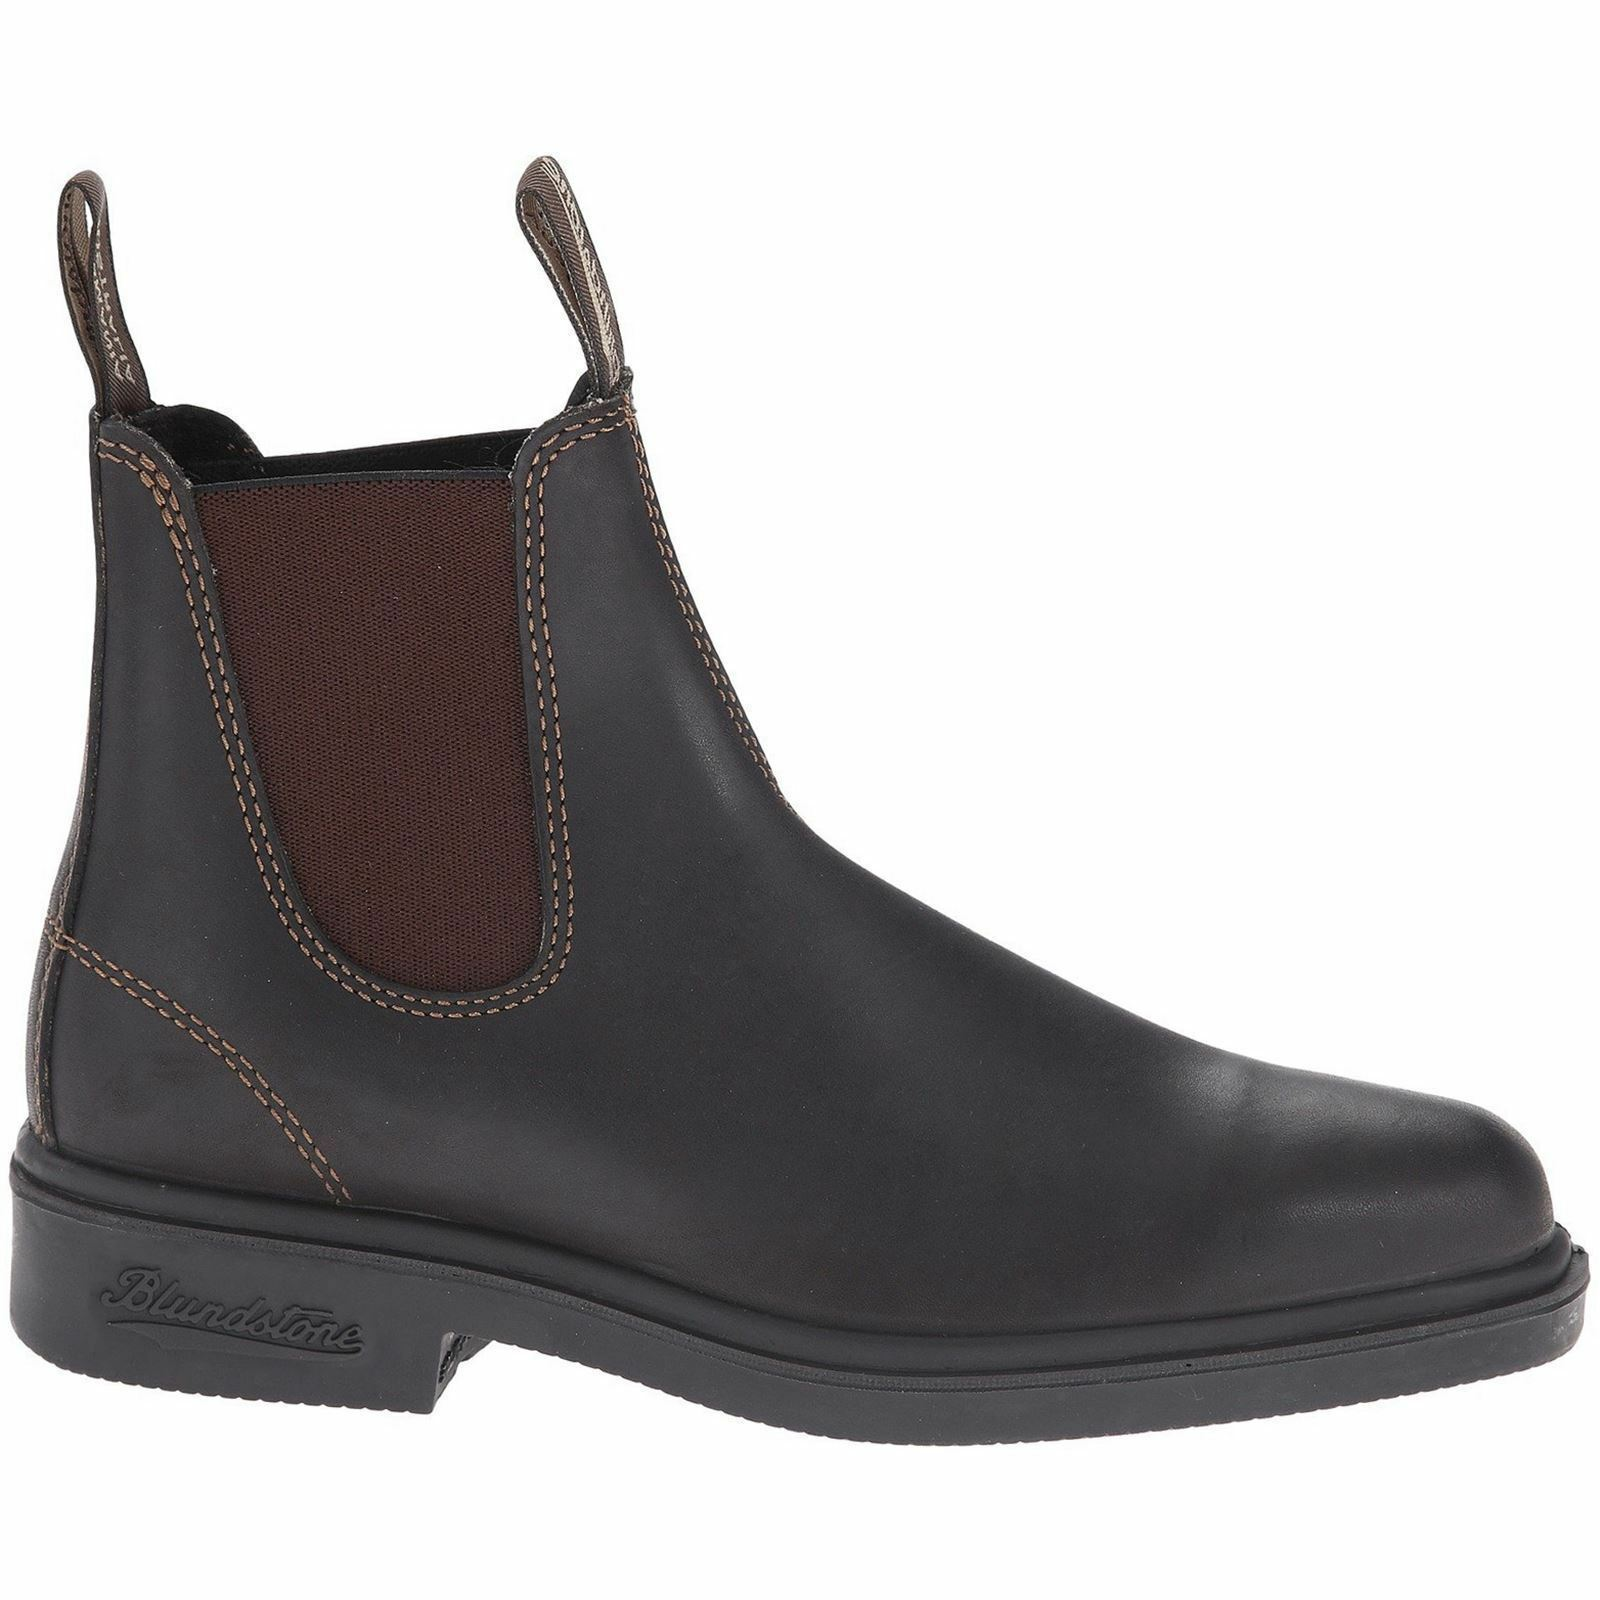 bluendstone 062 Stout Brown Unisex Leather Square-Toe Chelsea Boot